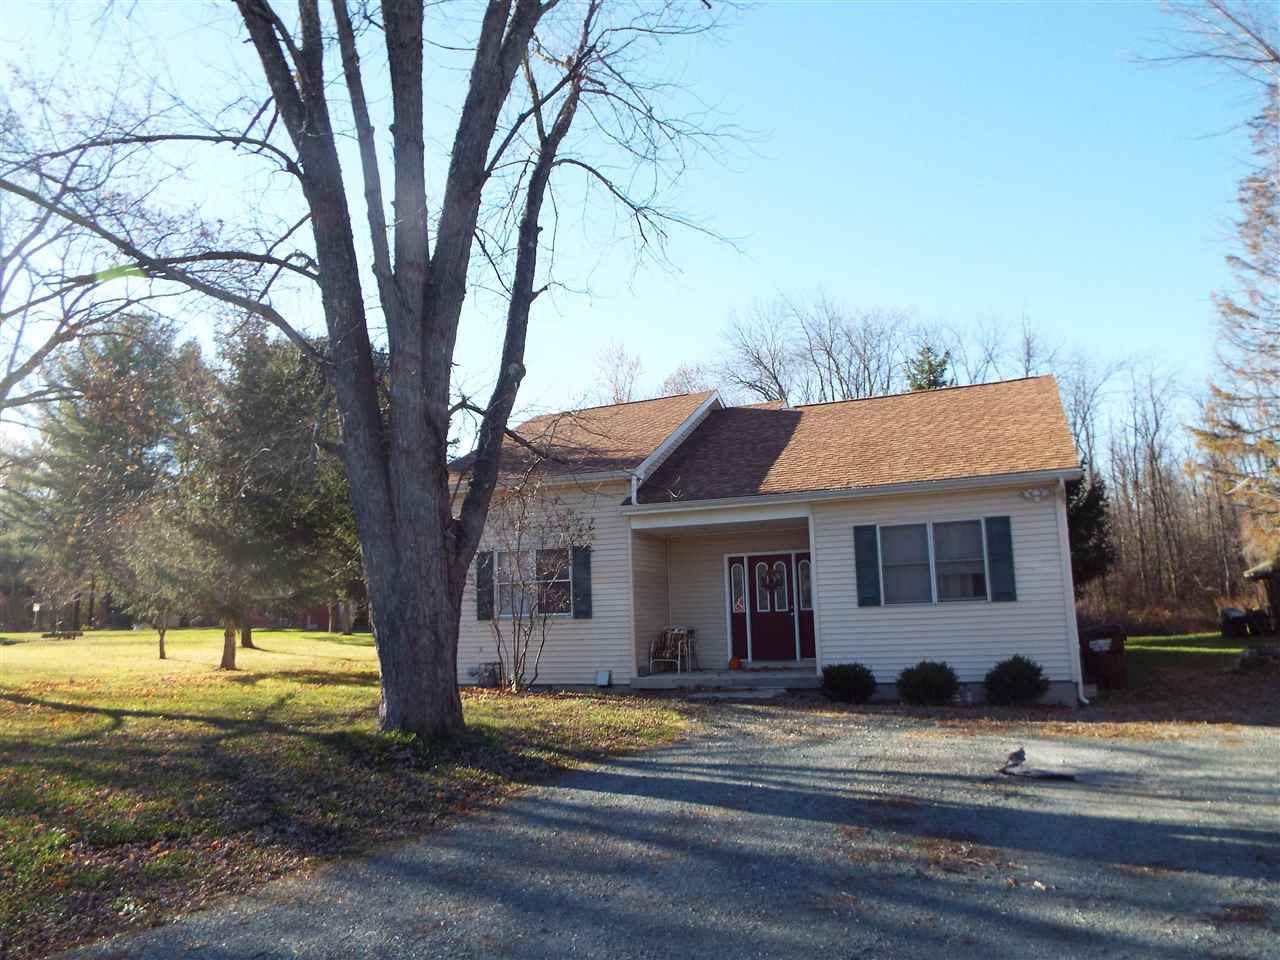 89 State Farm Rd, Voorheesville, NY